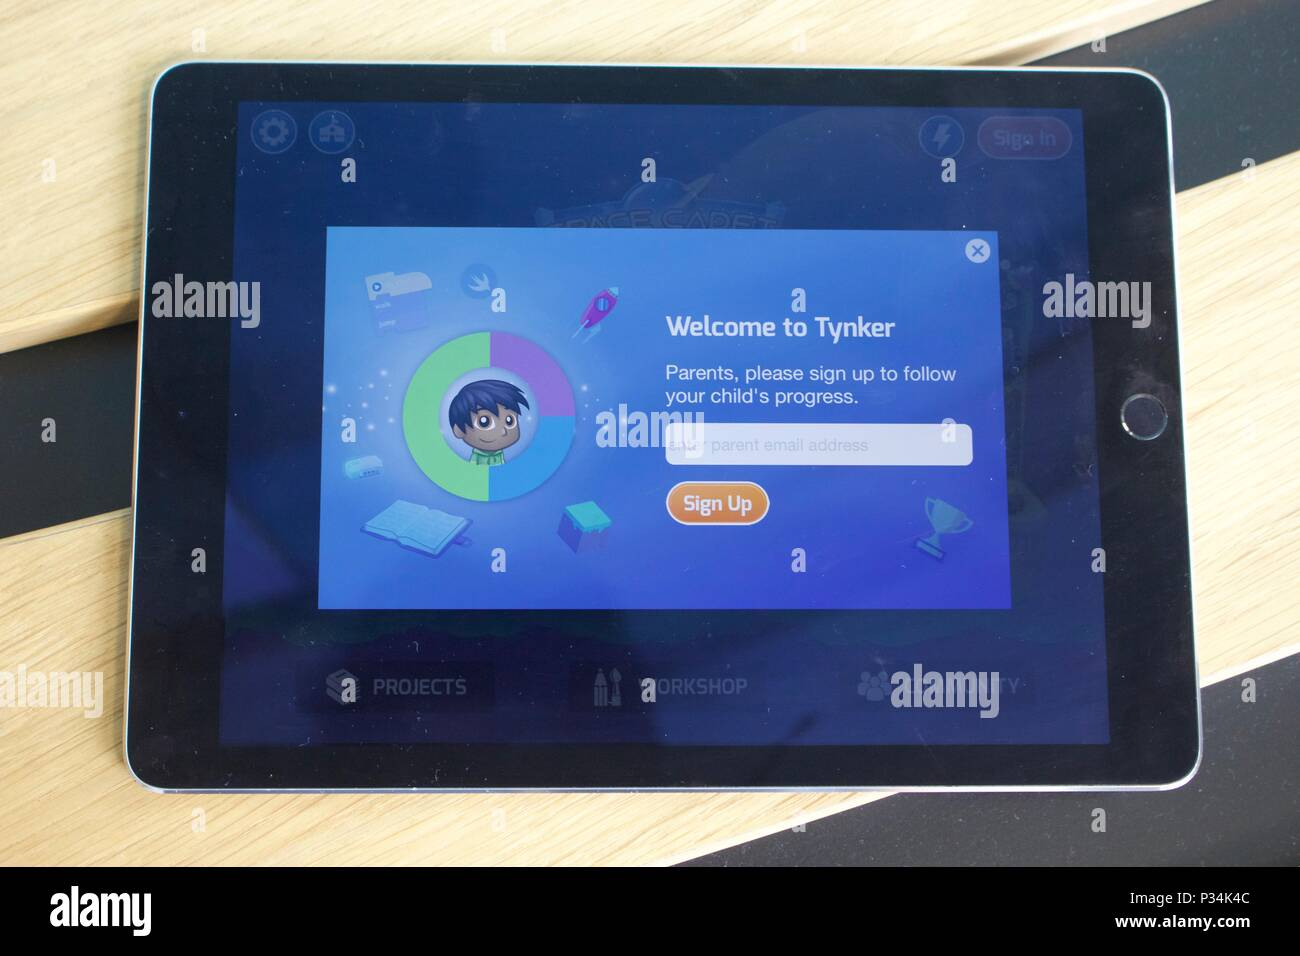 Tynker: Coding for Kids app on the 'Welcome to Tynker' email signup screen - Stock Image